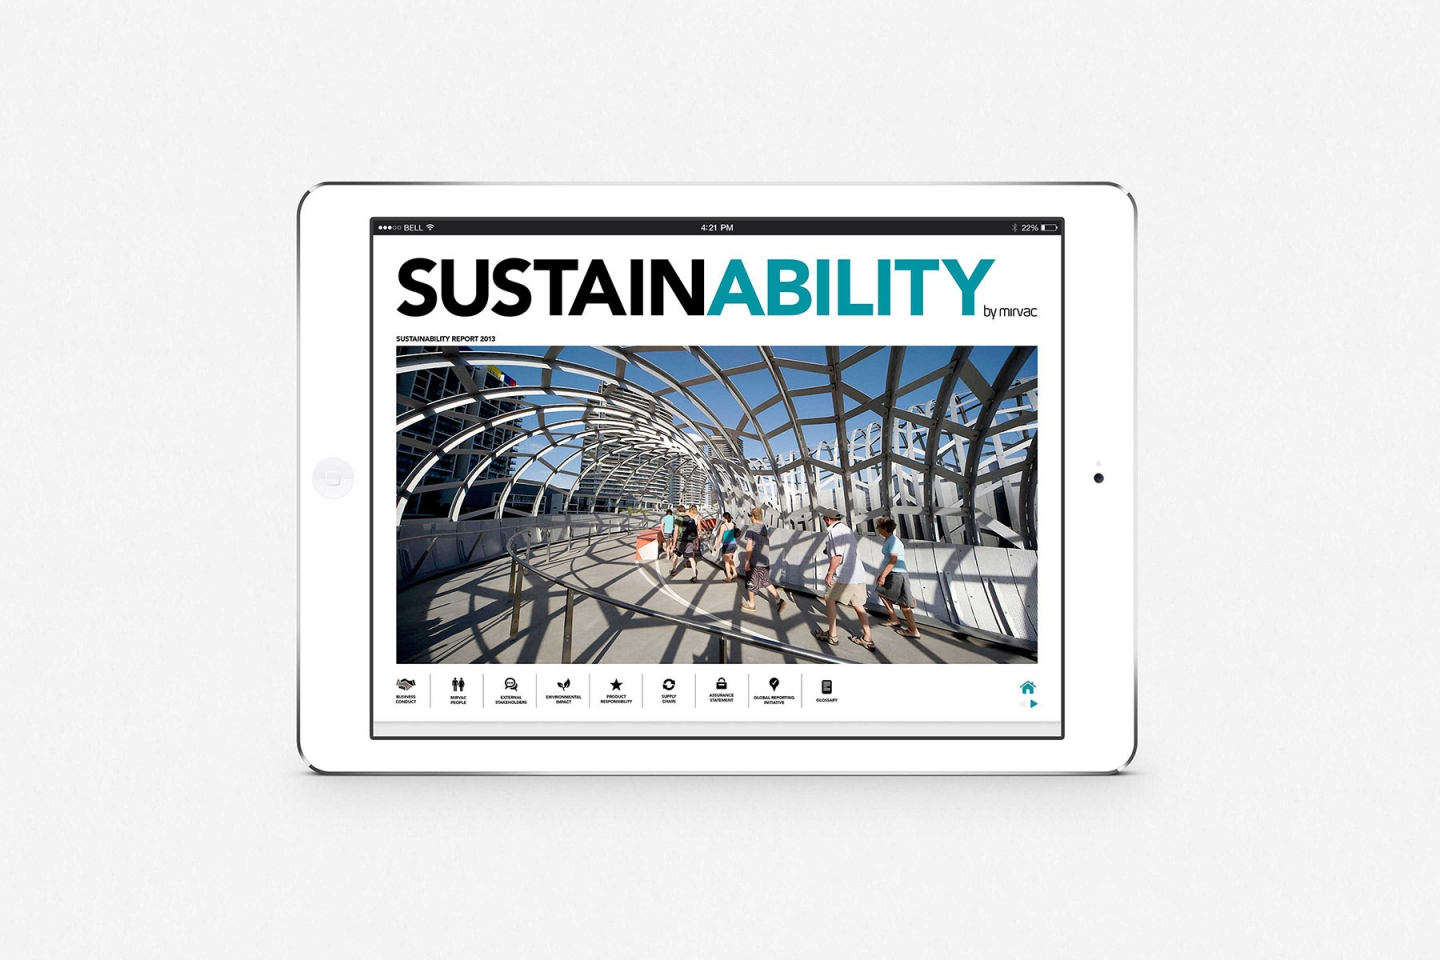 Mirvac: Sustainability Report Online 2013